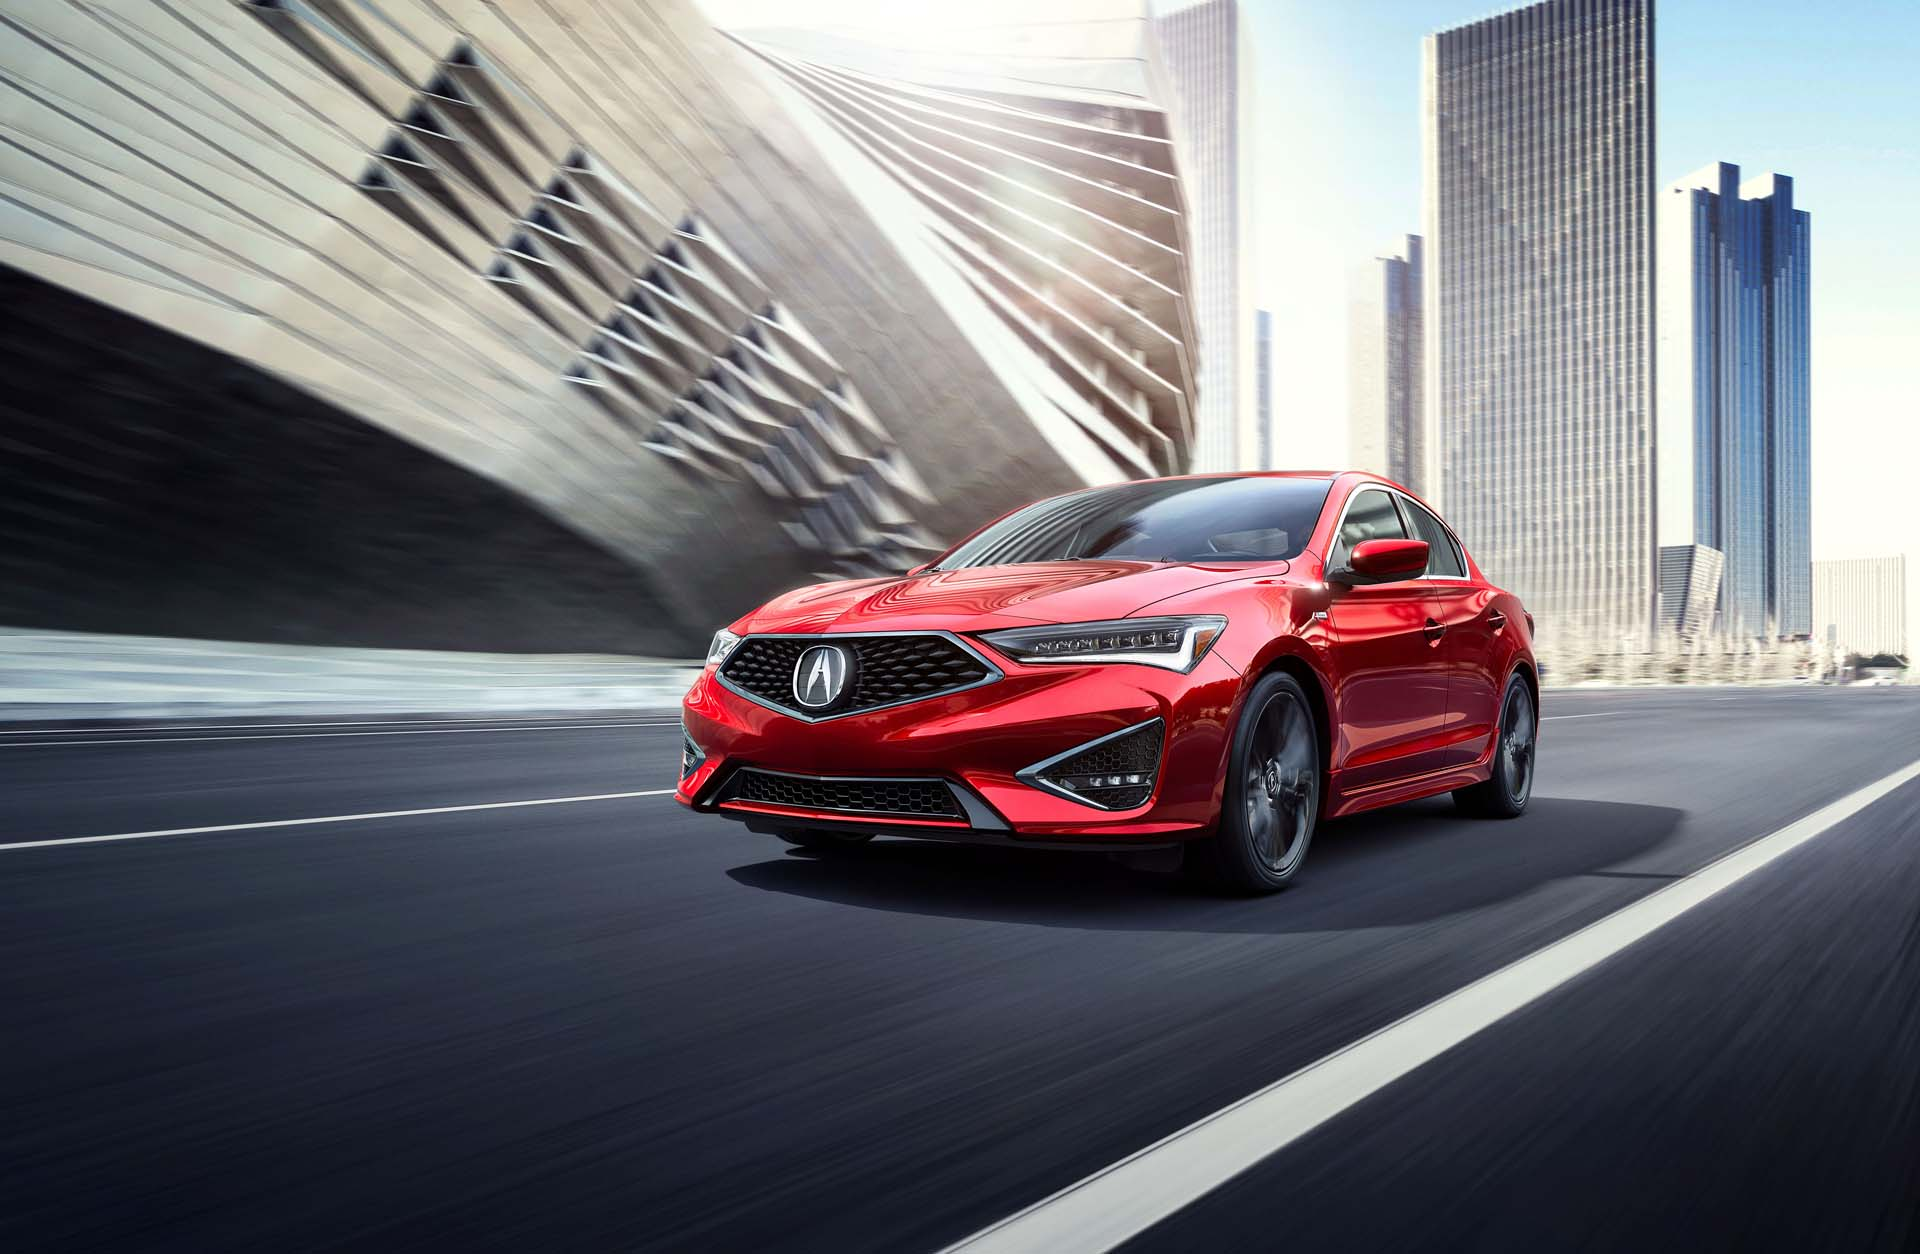 What Upgrades Come with the 2019 ILX A-Spec Package?